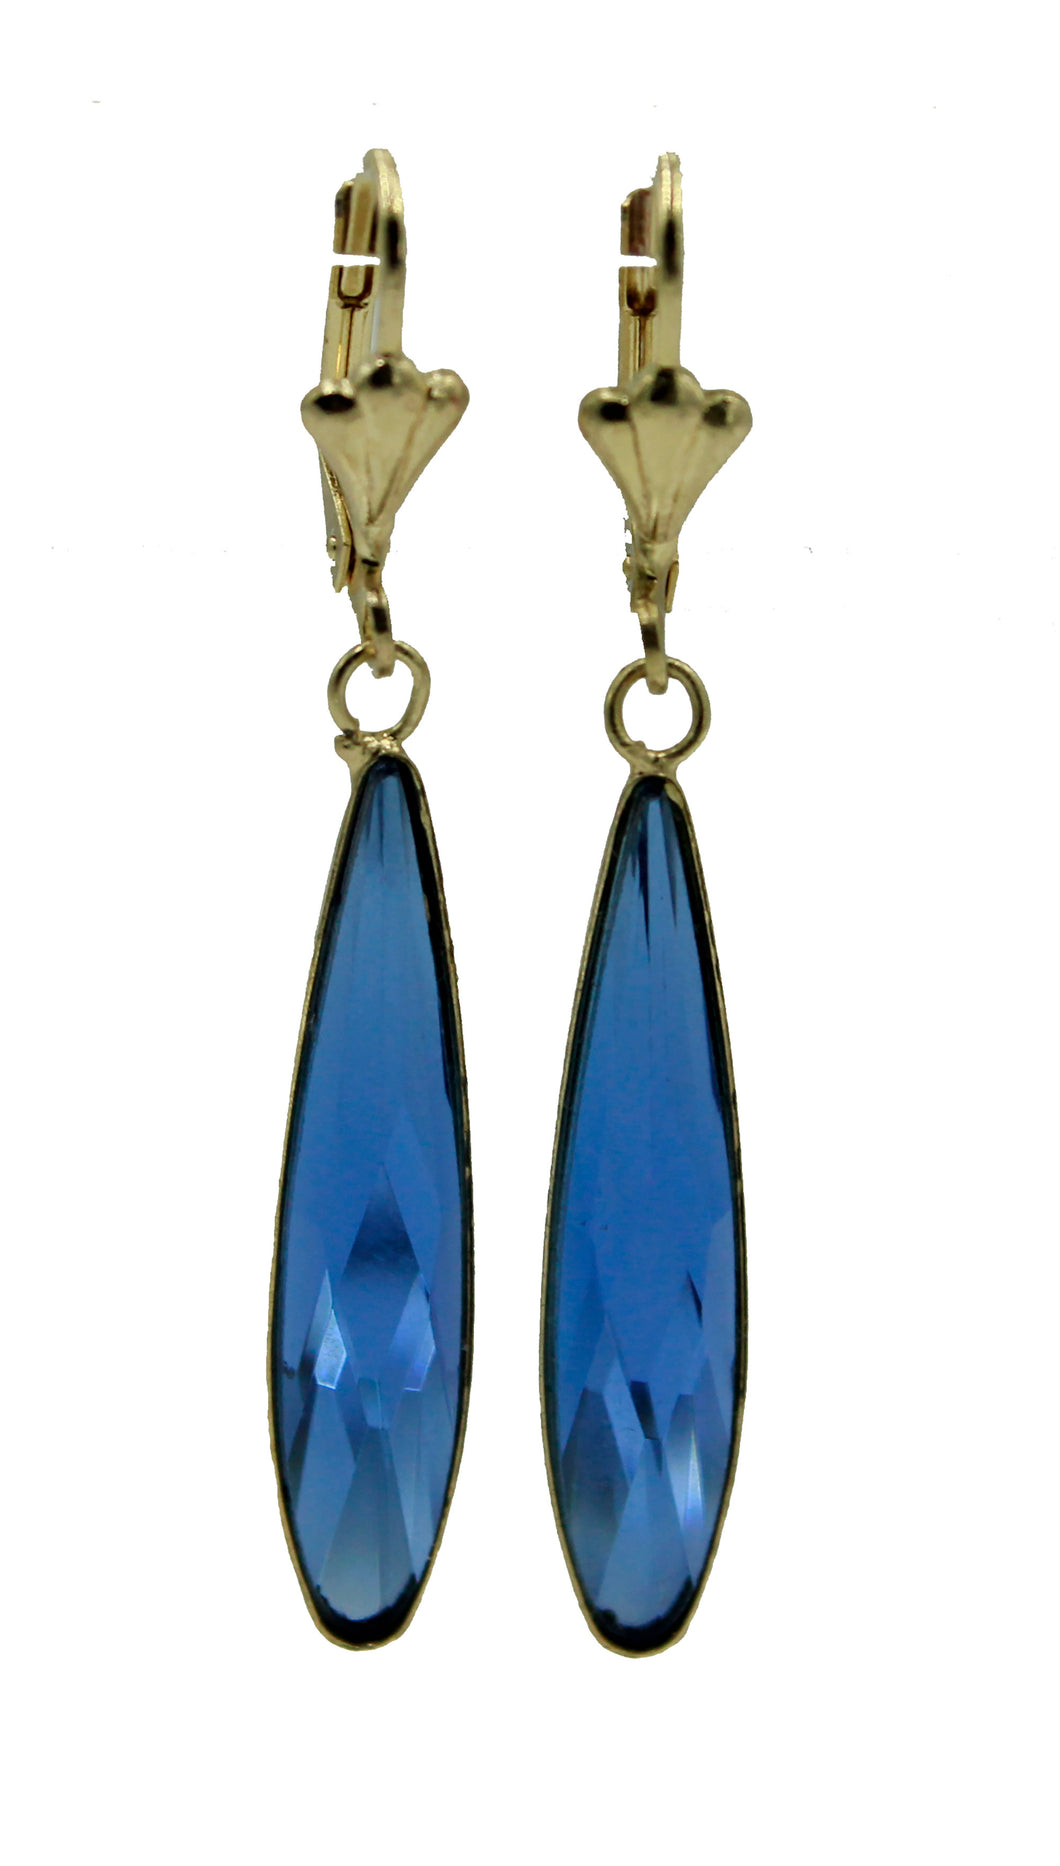 Blue Long Drop Leverback Dangle Earring 18k Gold Plated French Clasp - Blue Drop